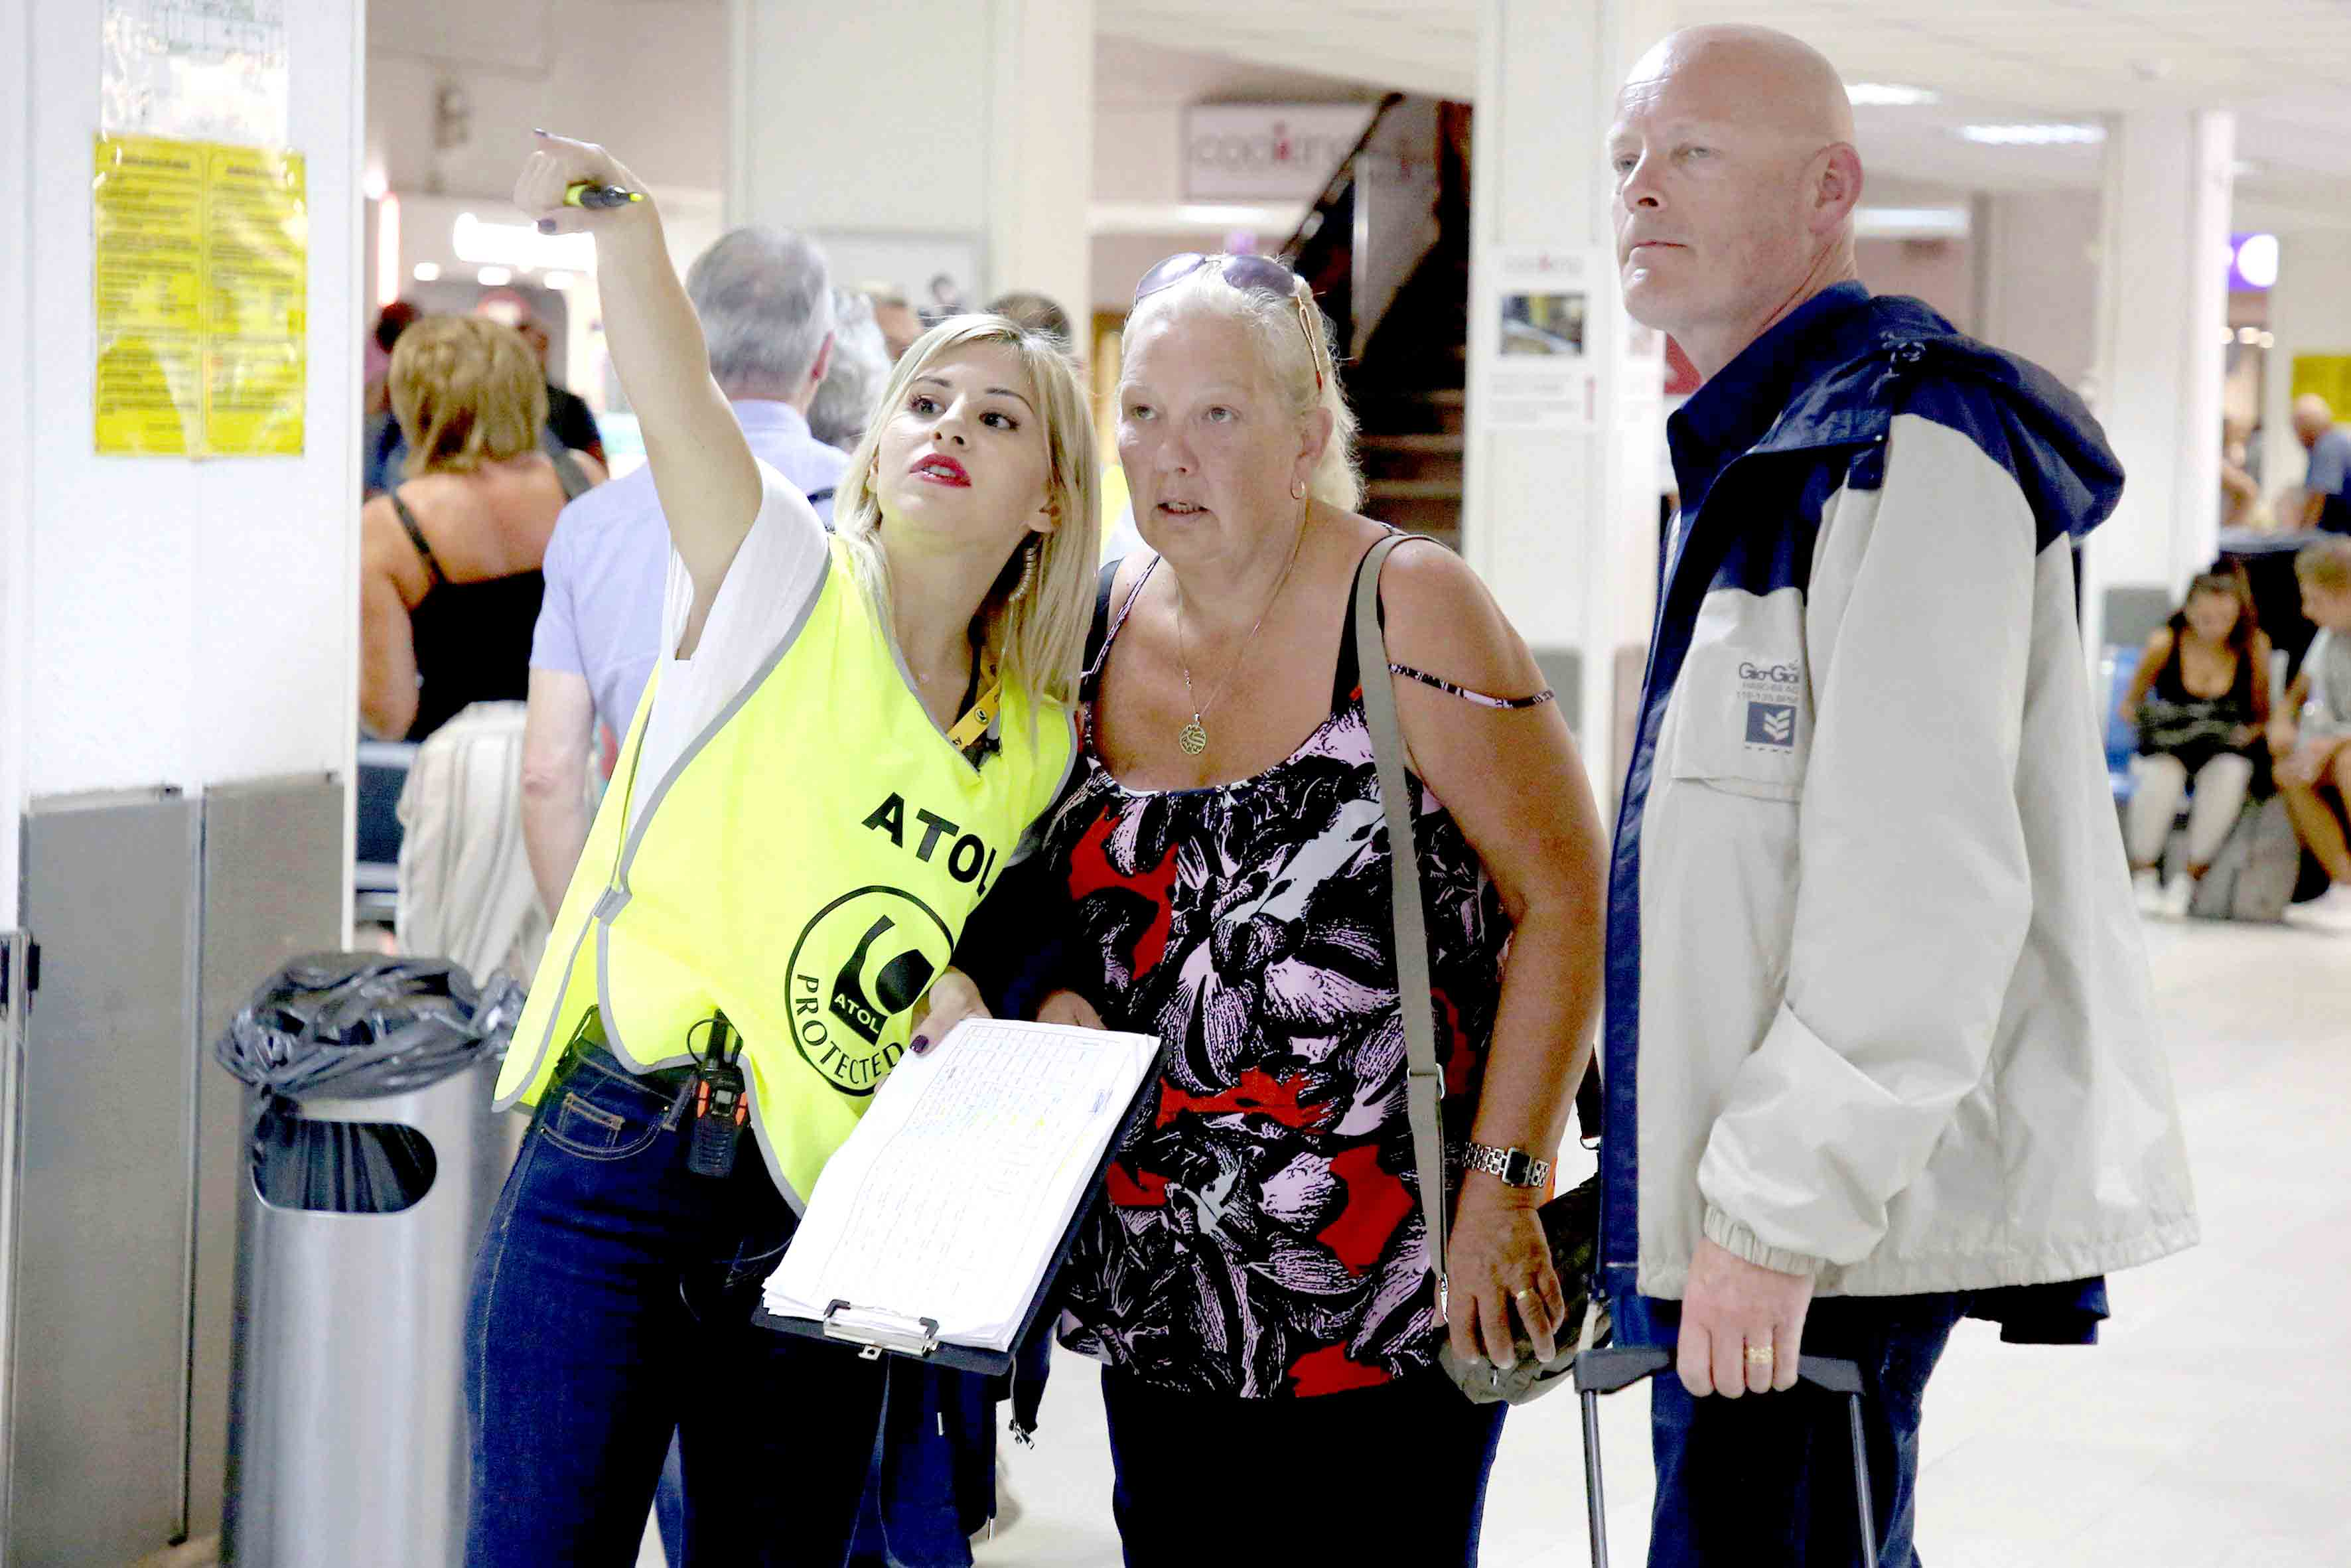 A long odyssey comes to abrupt end. An Air Travel Organiser's Licence official directs Thomas Cook customers at the airport of Heraklion, on the island of Crete, Greece, September 24.(Reuters)